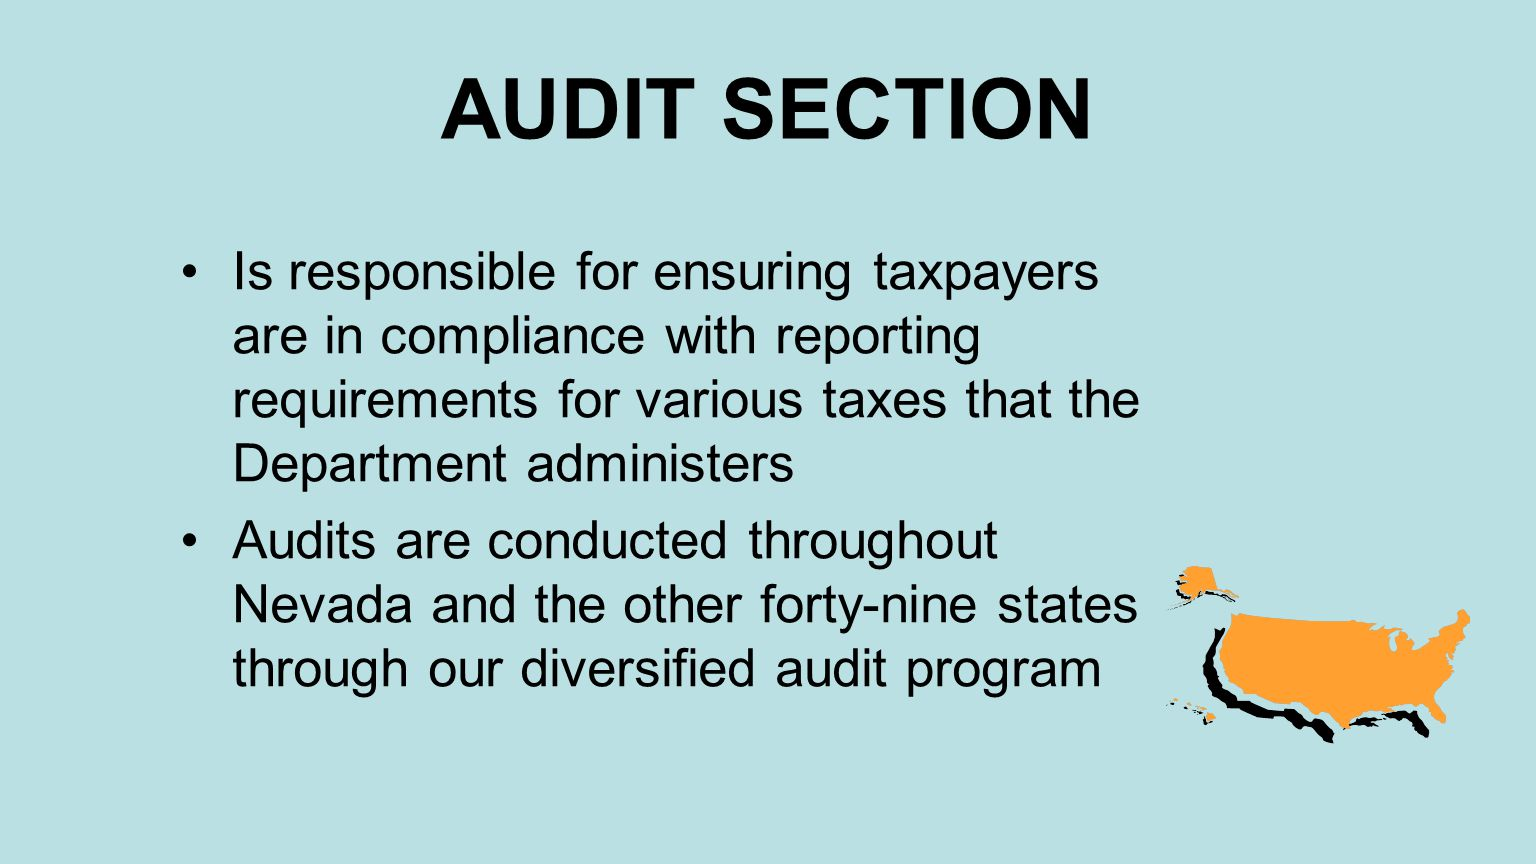 AUDIT SECTION Is responsible for ensuring taxpayers are in compliance with reporting requirements for various taxes that the Department administers Audits are conducted throughout Nevada and the other forty-nine states through our diversified audit program